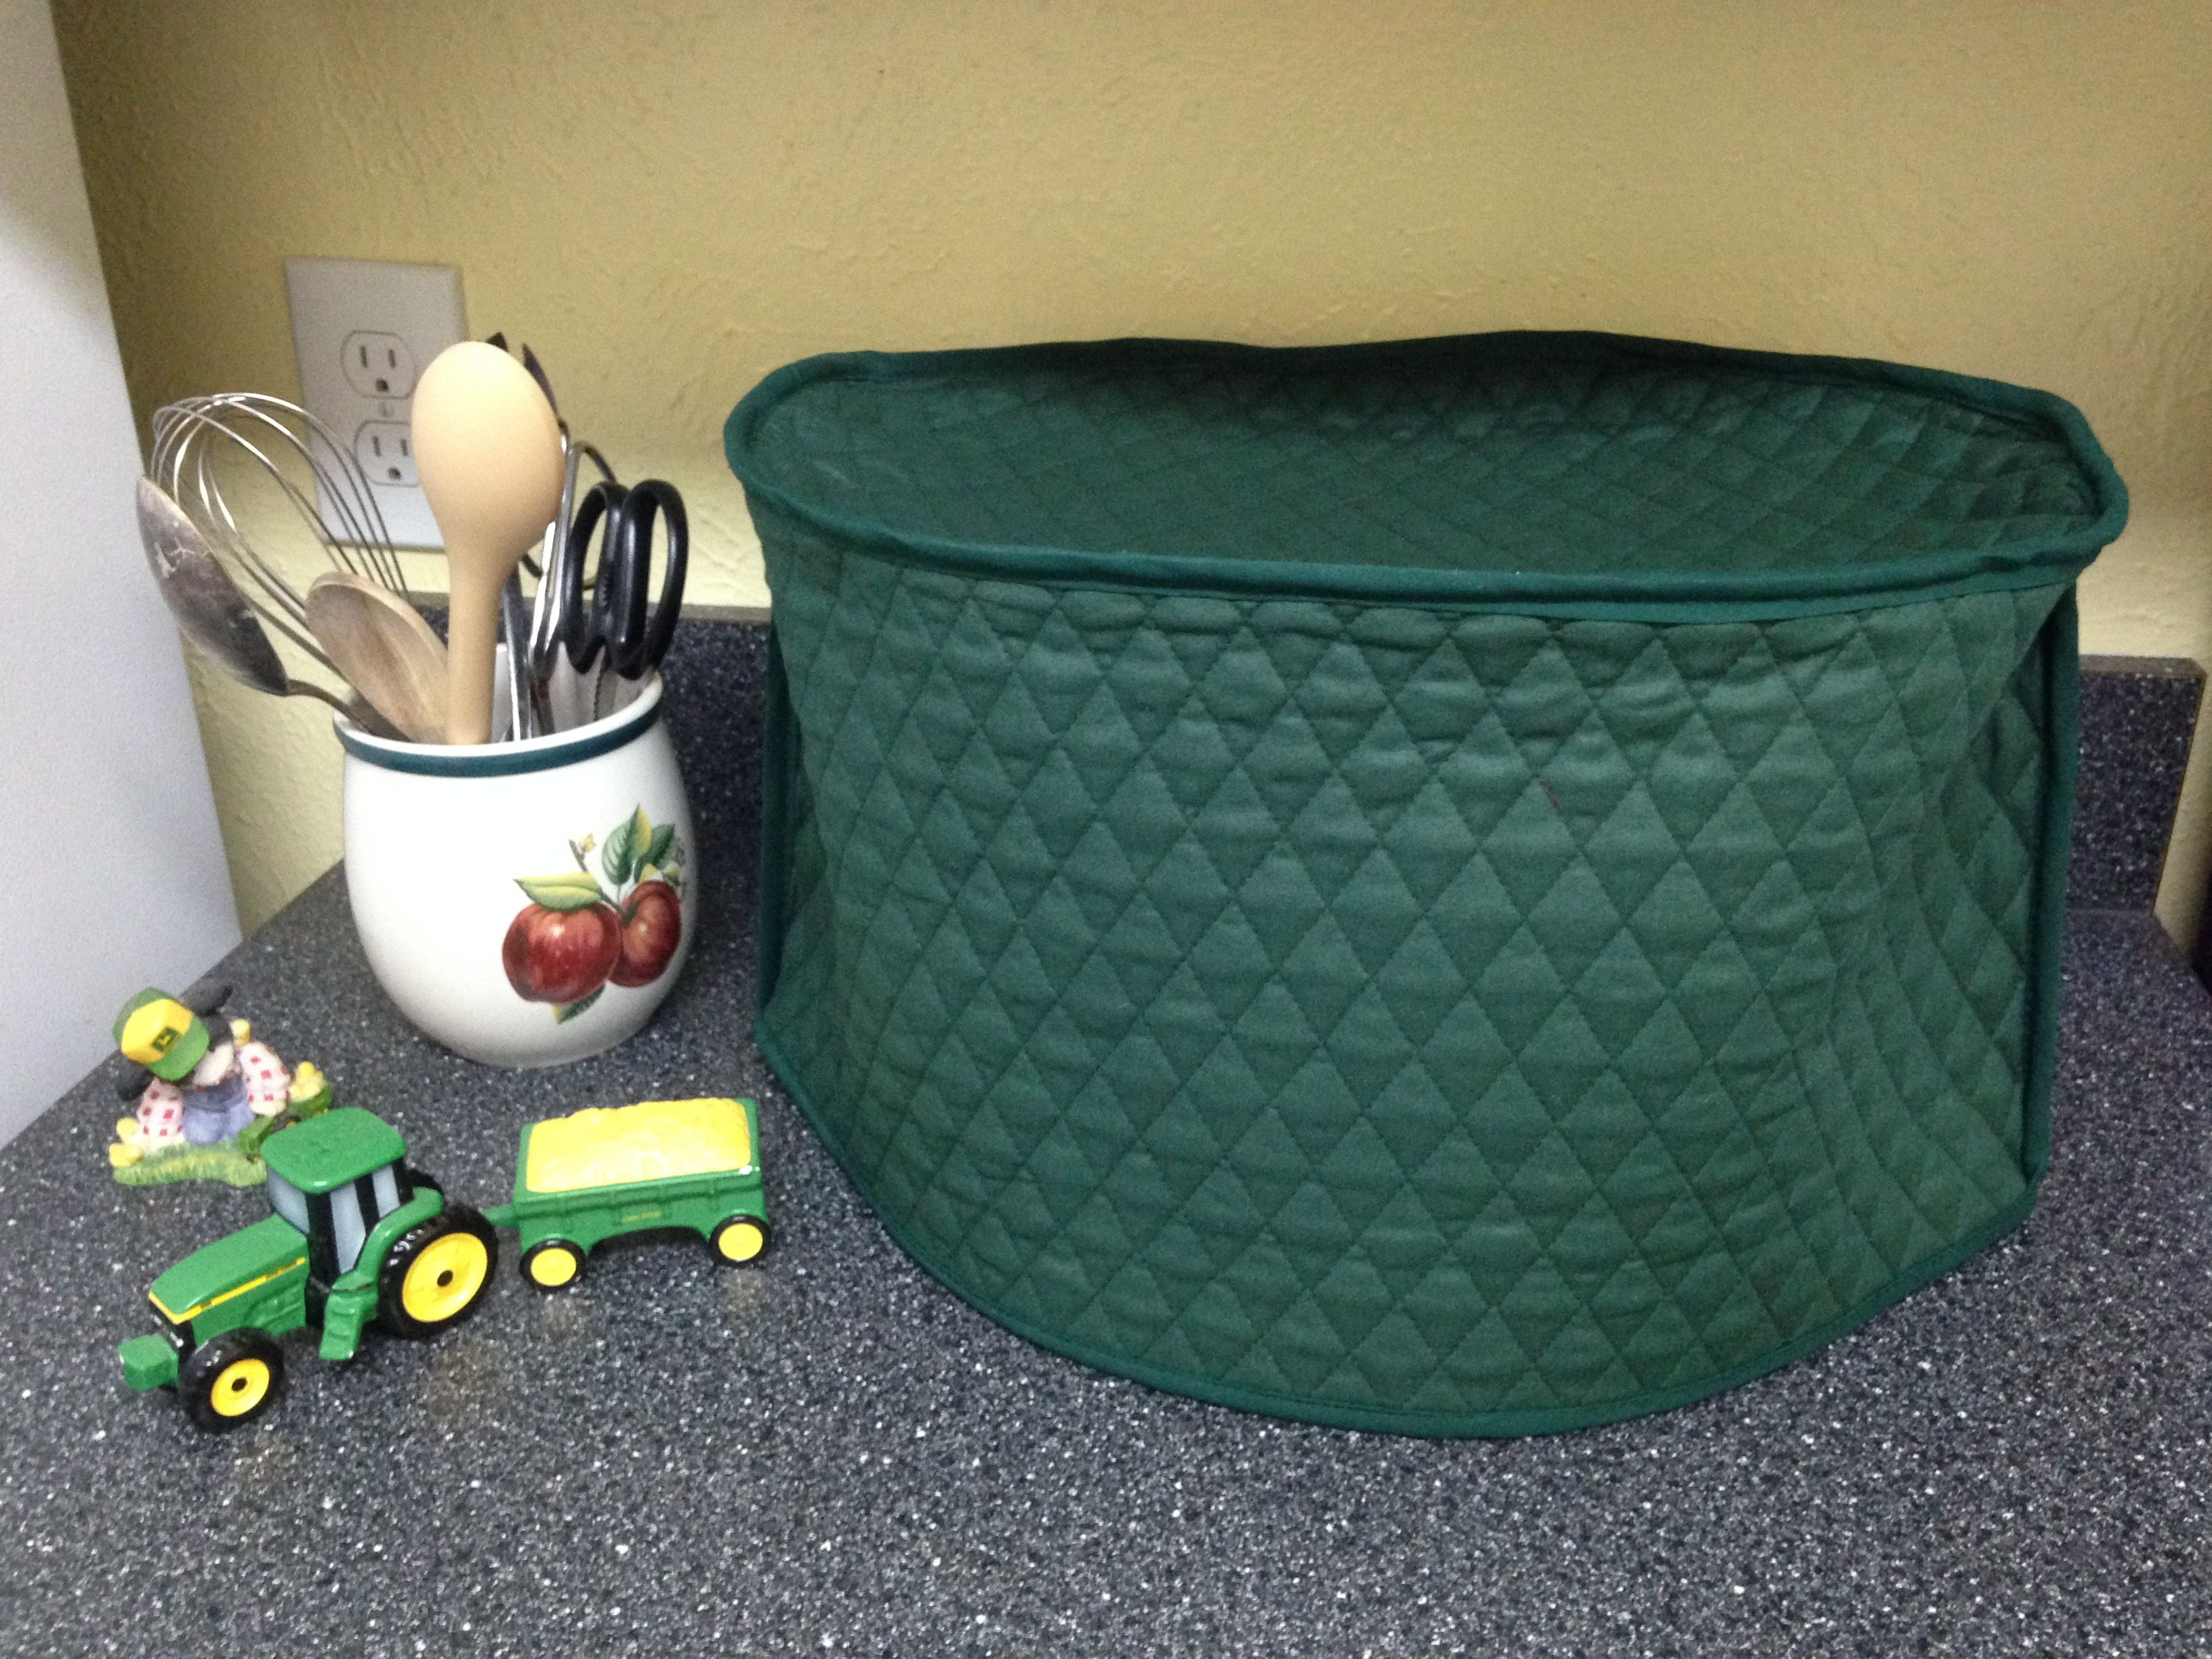 Hunter Green Oval Crock Pot Dust Cover Made To Order Crock Pot Sizes Green Oval Small Appliance Covers